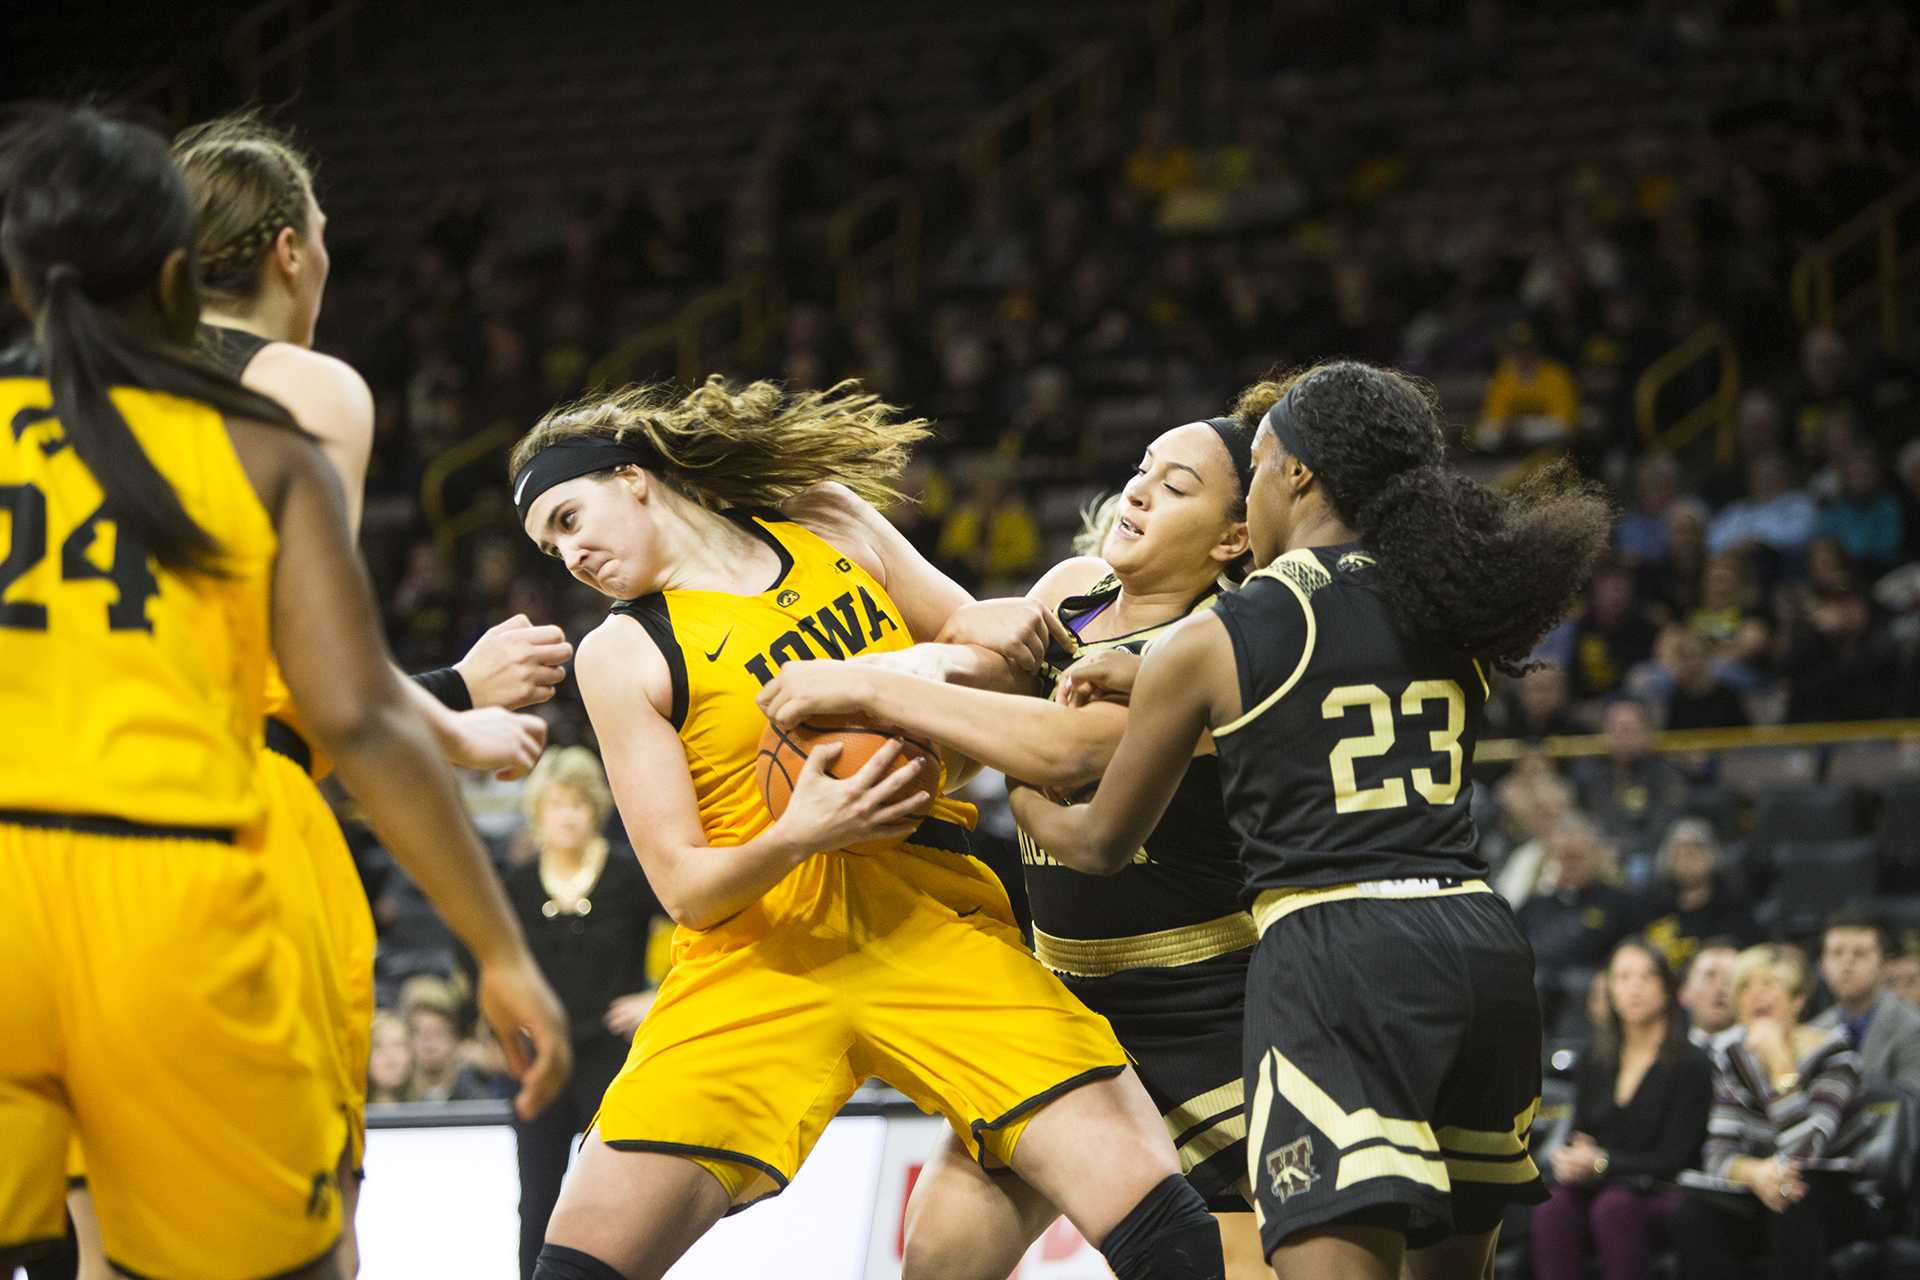 Iowa center Megan Gustafson fights for an offensive rebound away from Western Michigan defenders during the Iowa/Western Michigan women's basketball game in Carver-Hawkeye Arena on Sunday, Nov. 19, 2017. The Hawkeyes defeated the Broncos, 79-56. (Joseph Cress/The Daily Iowan)